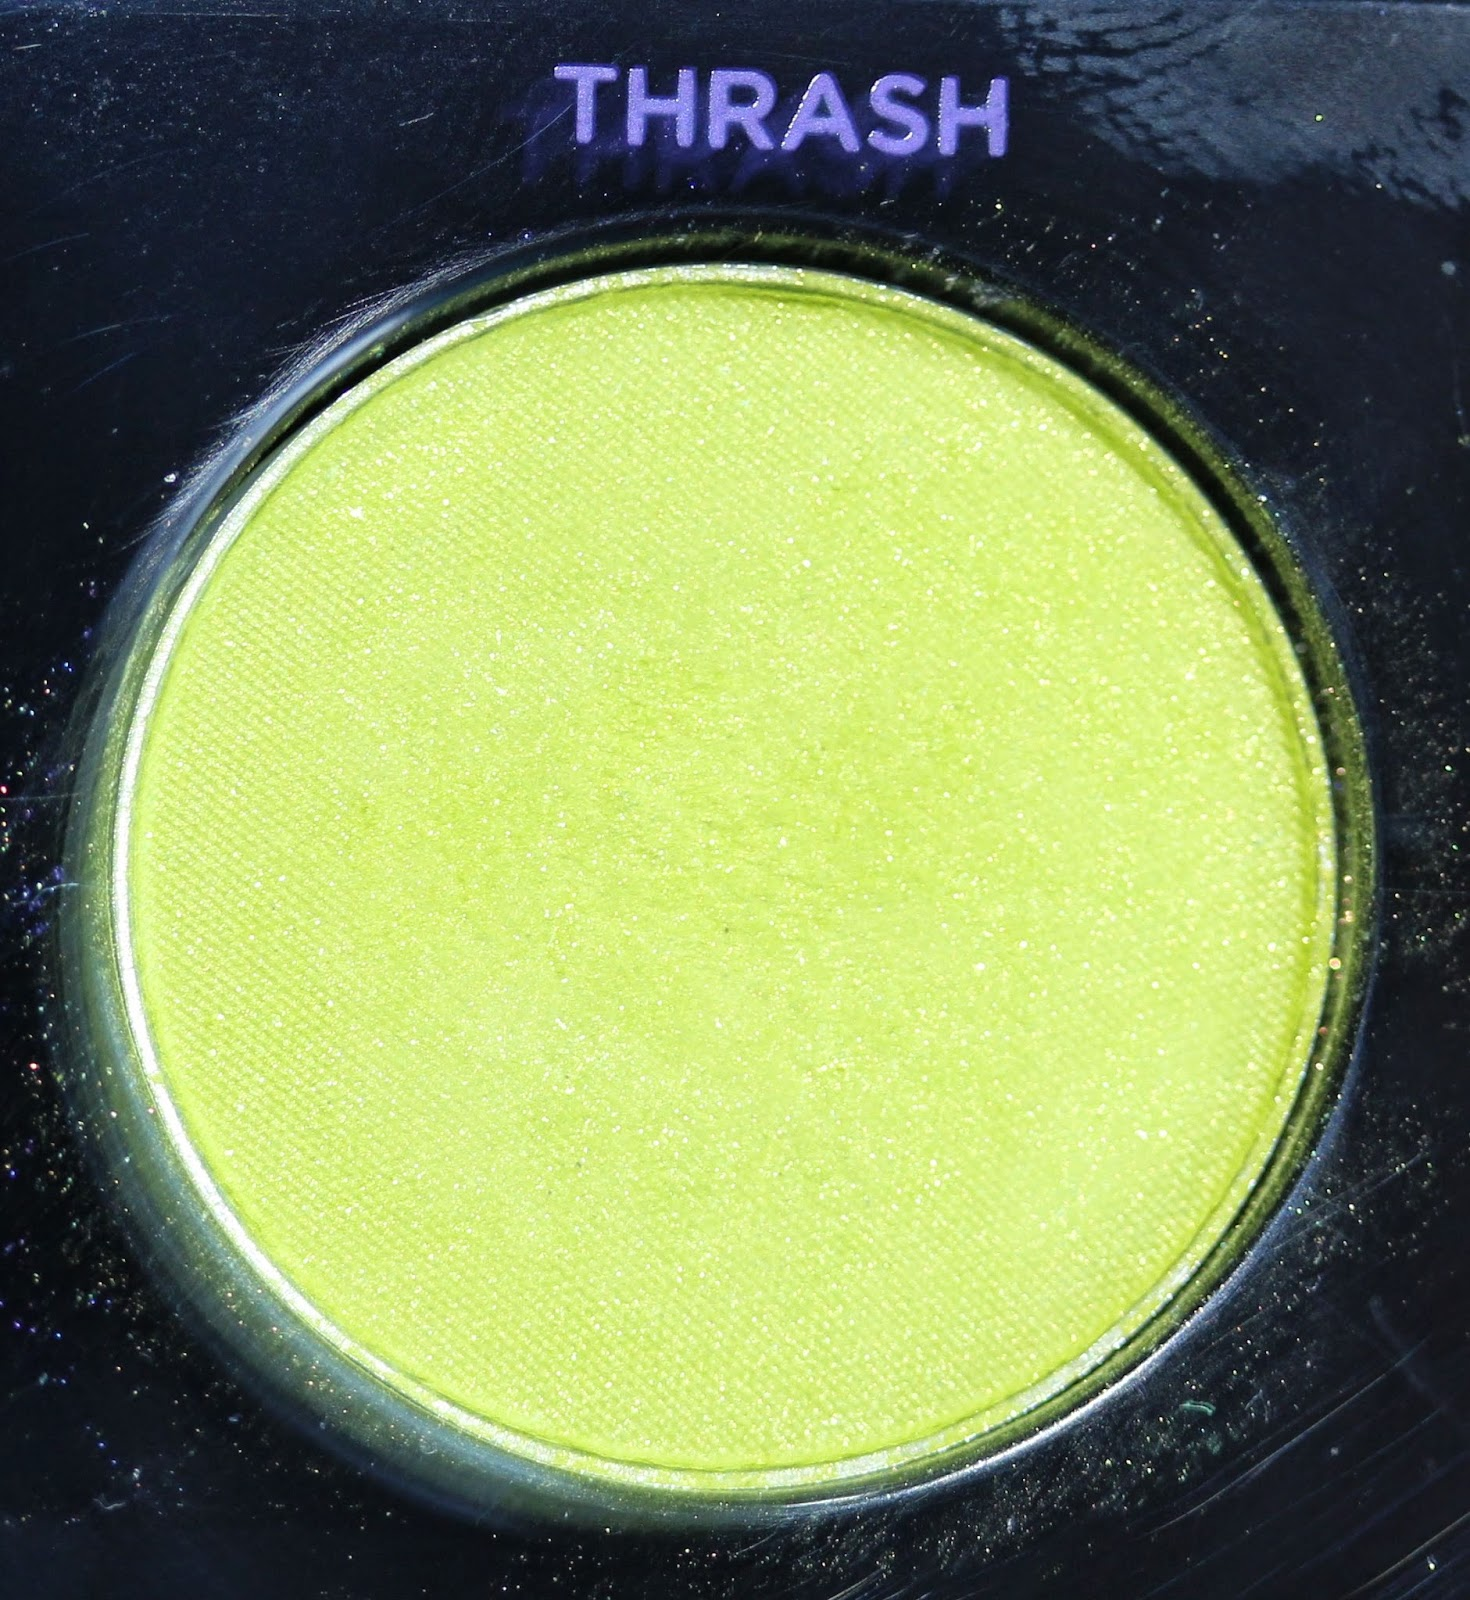 Urban Decay Thrash from the Electric palette